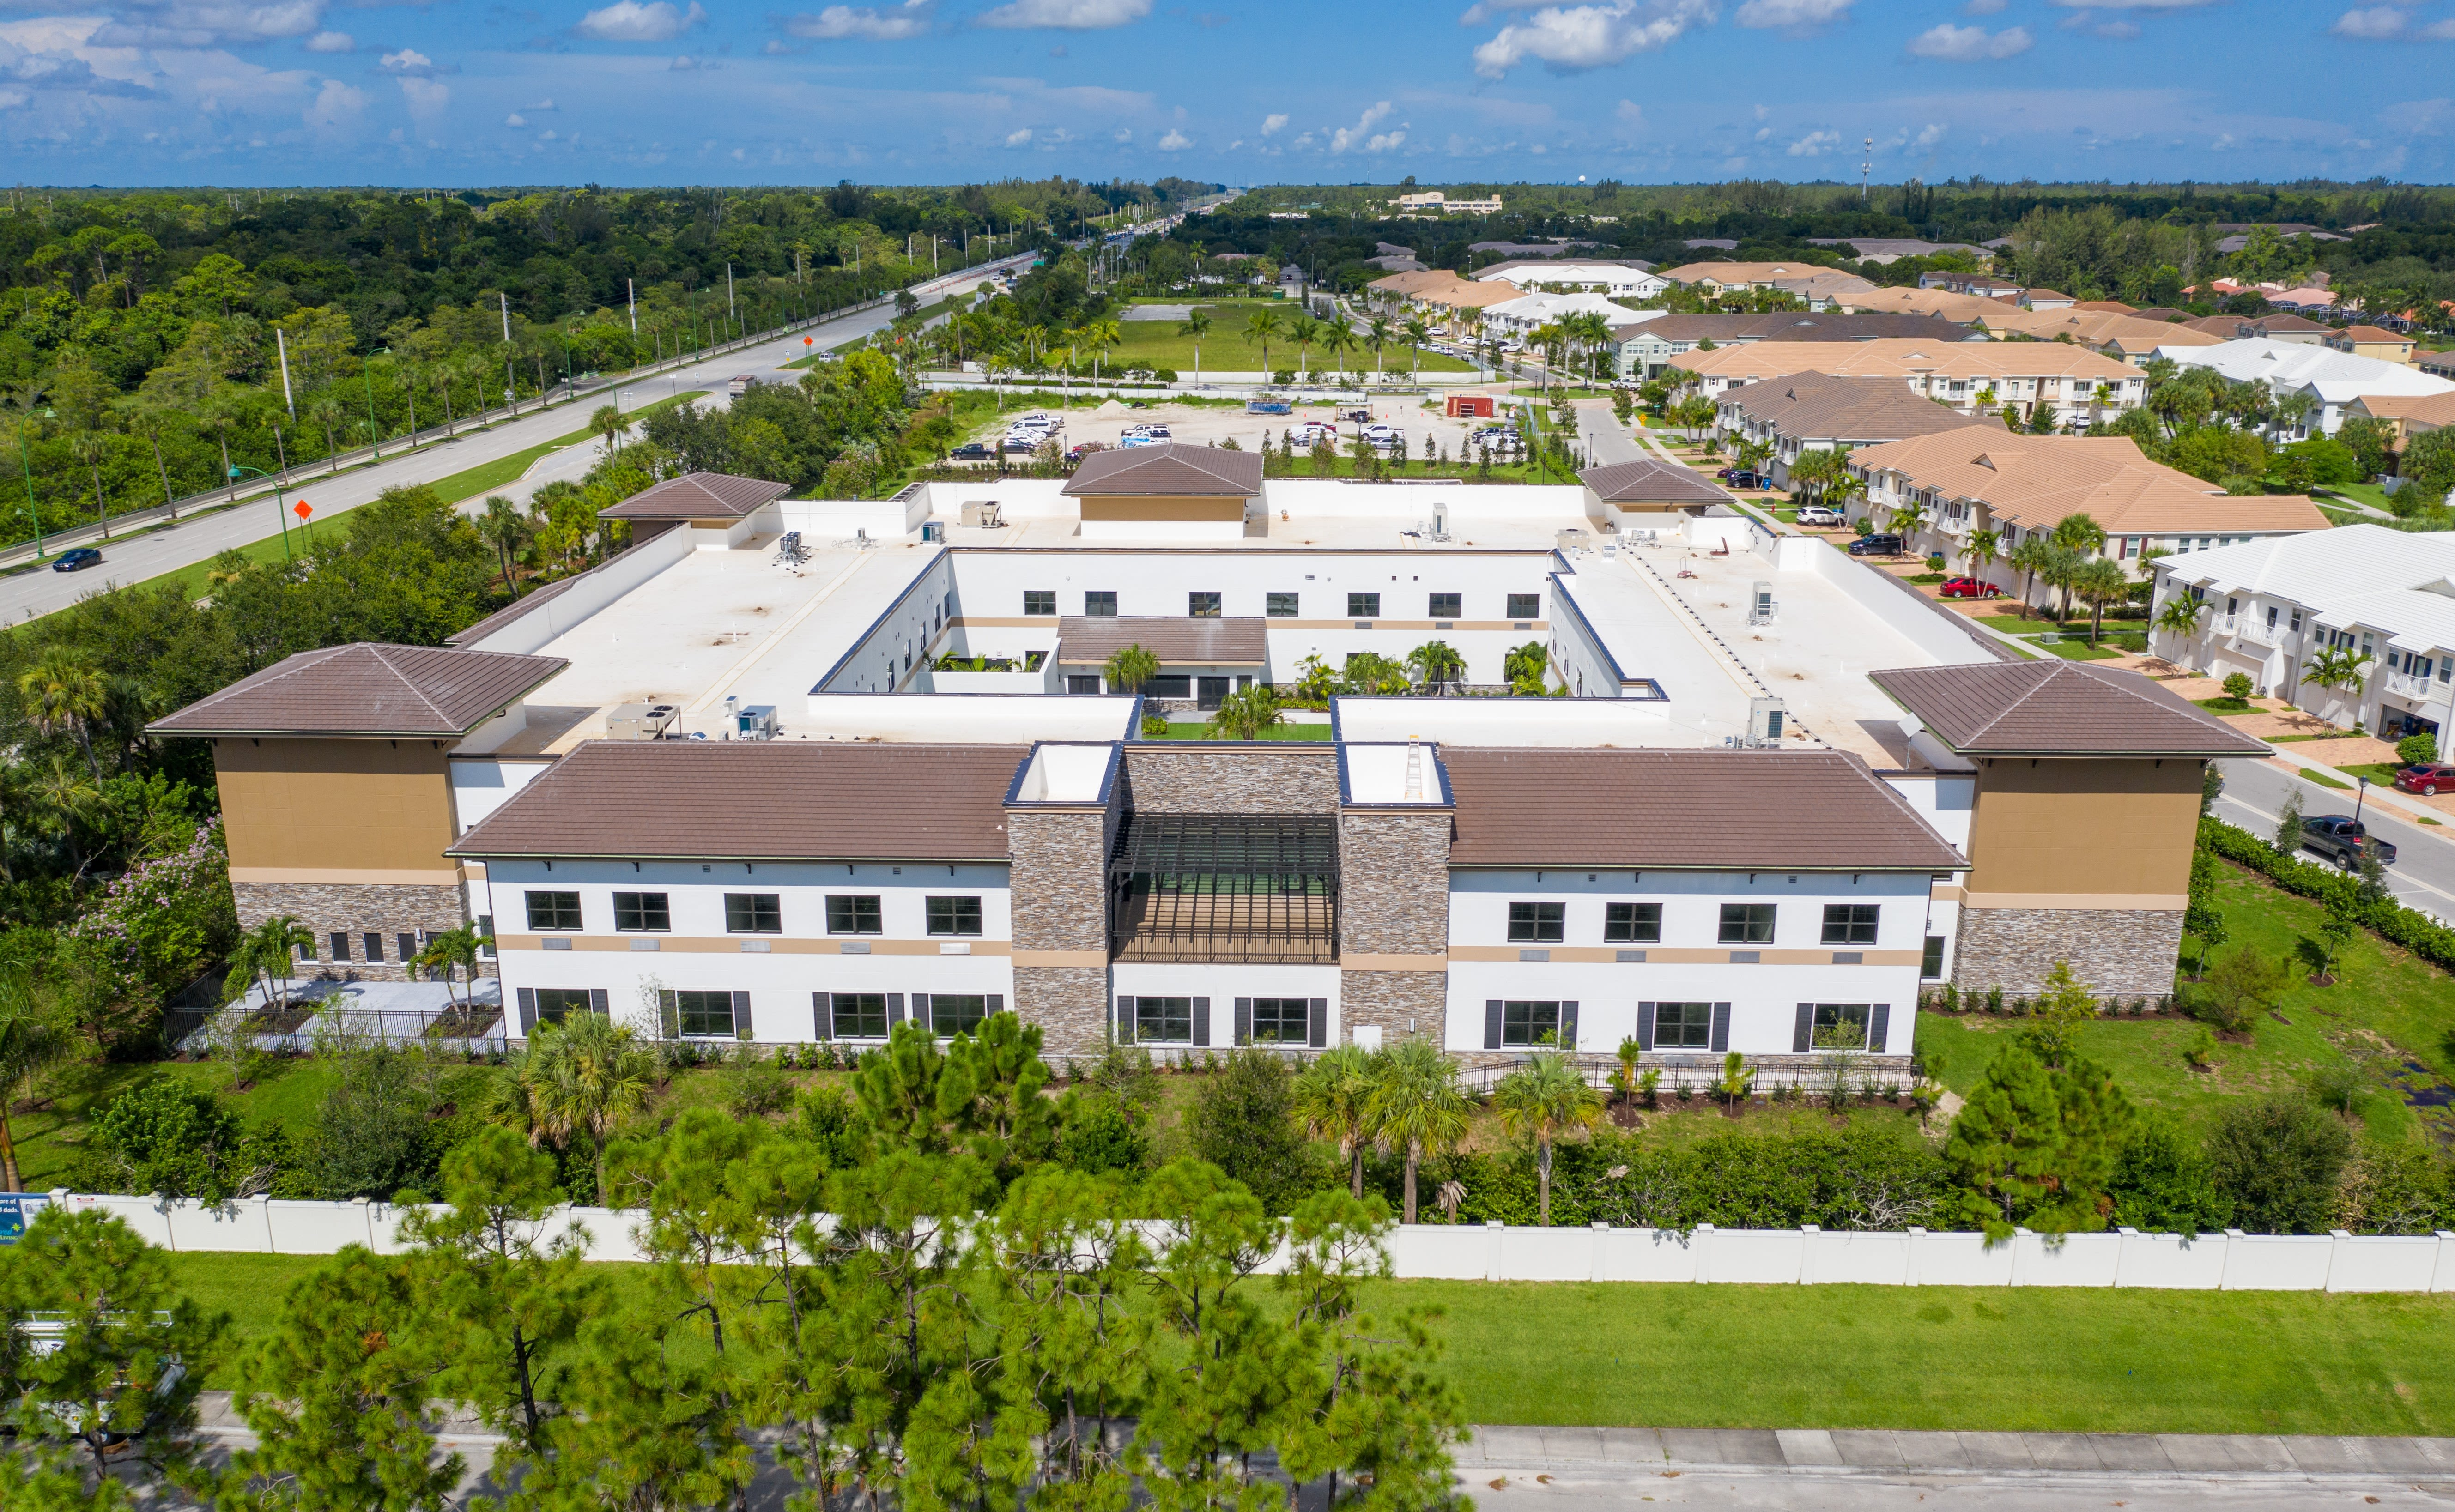 Back exterior angle of the new community at Inspired Living Royal Palm Beach in Royal Palm Beach, Florida.